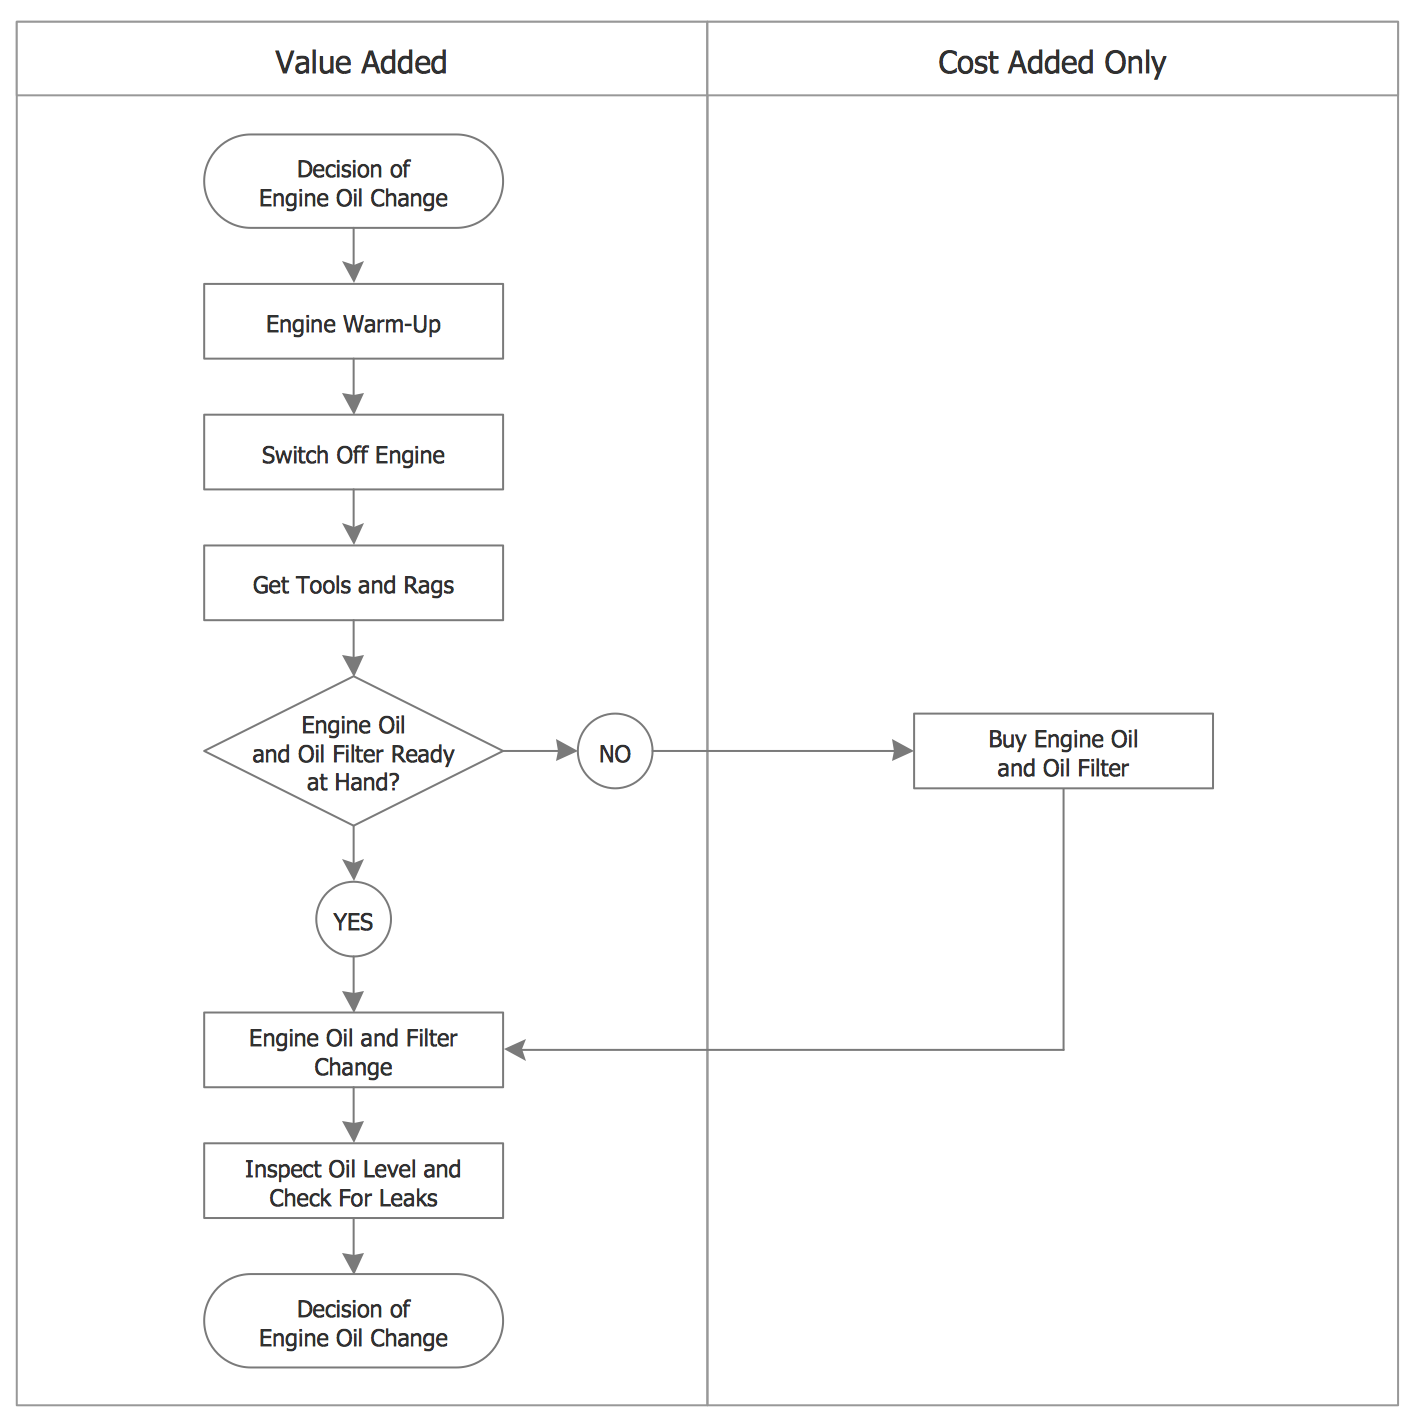 Process Flowchart — Replacing Engine Oil